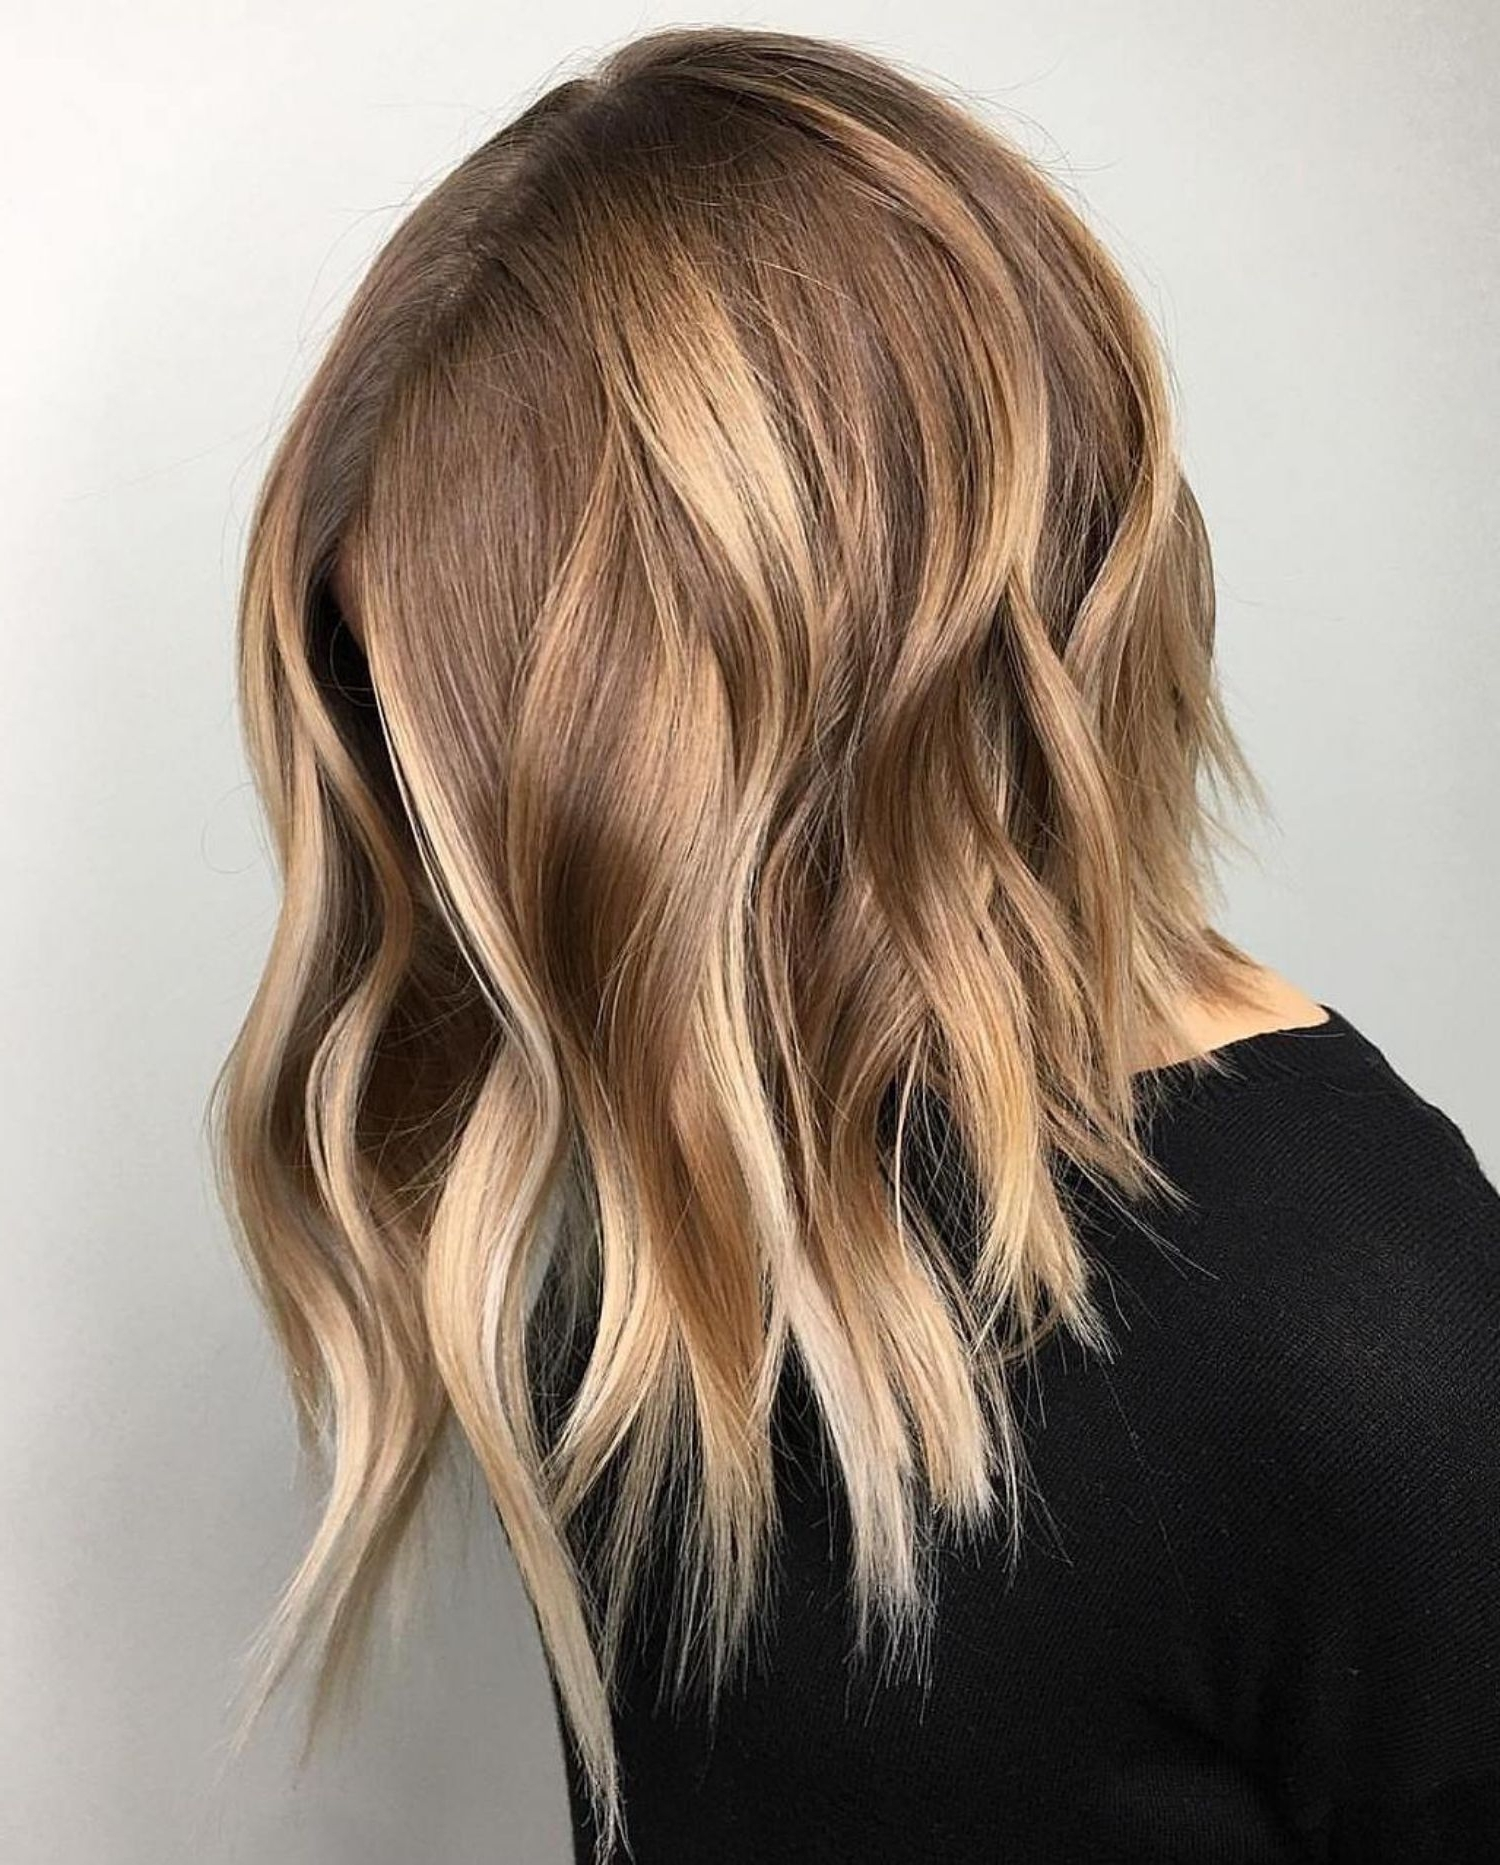 70 Best A Line Bob Hairstyles Screaming With Class And Style (Gallery 3 of 20)